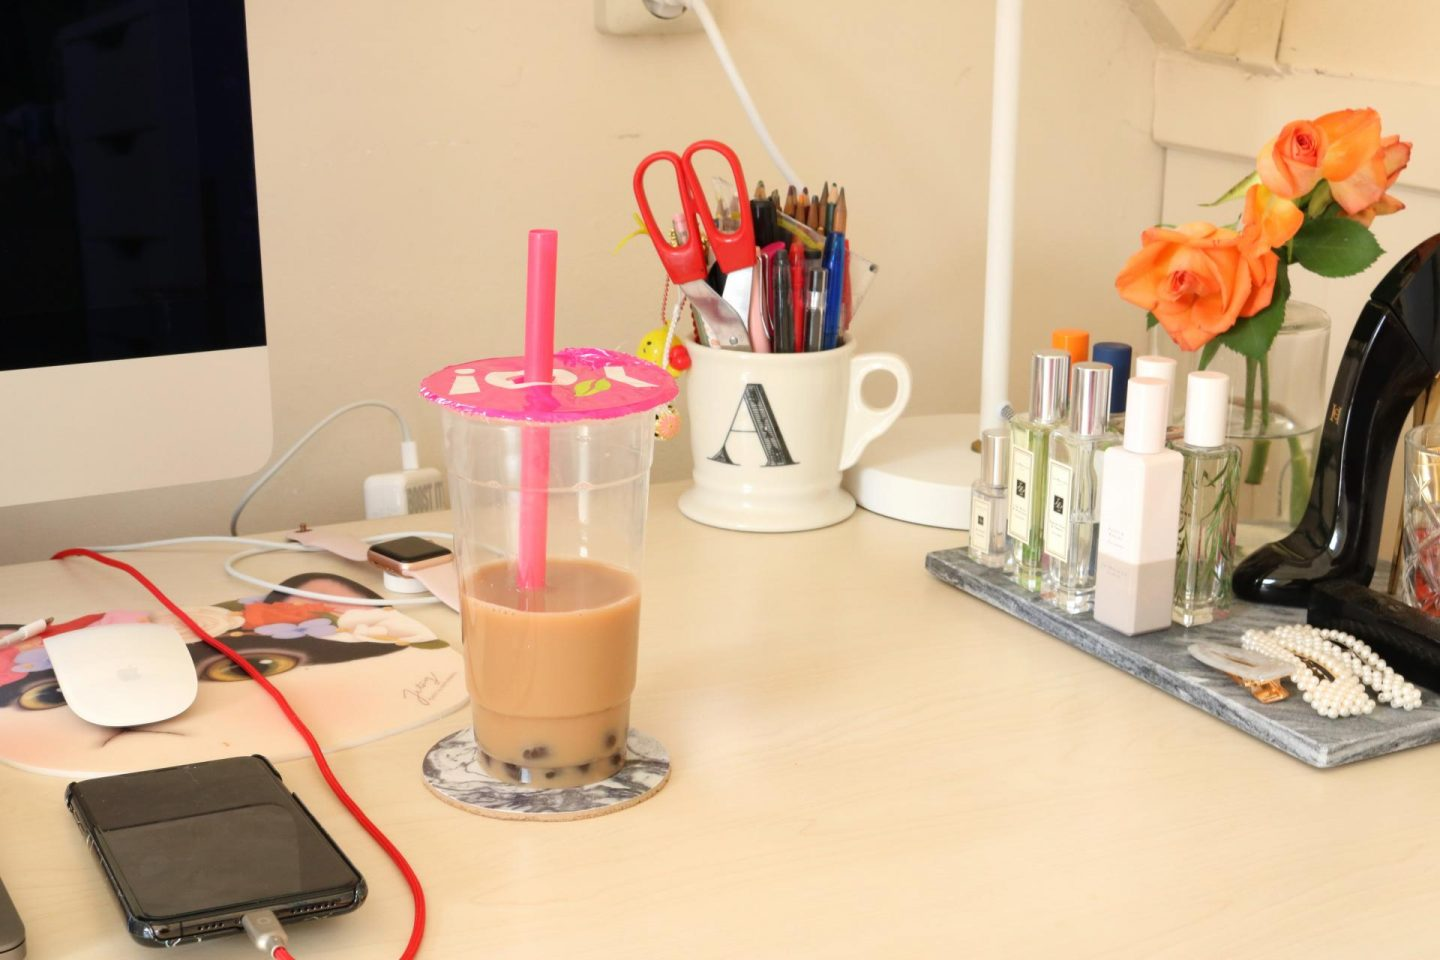 A desk is nothing without bubble tea